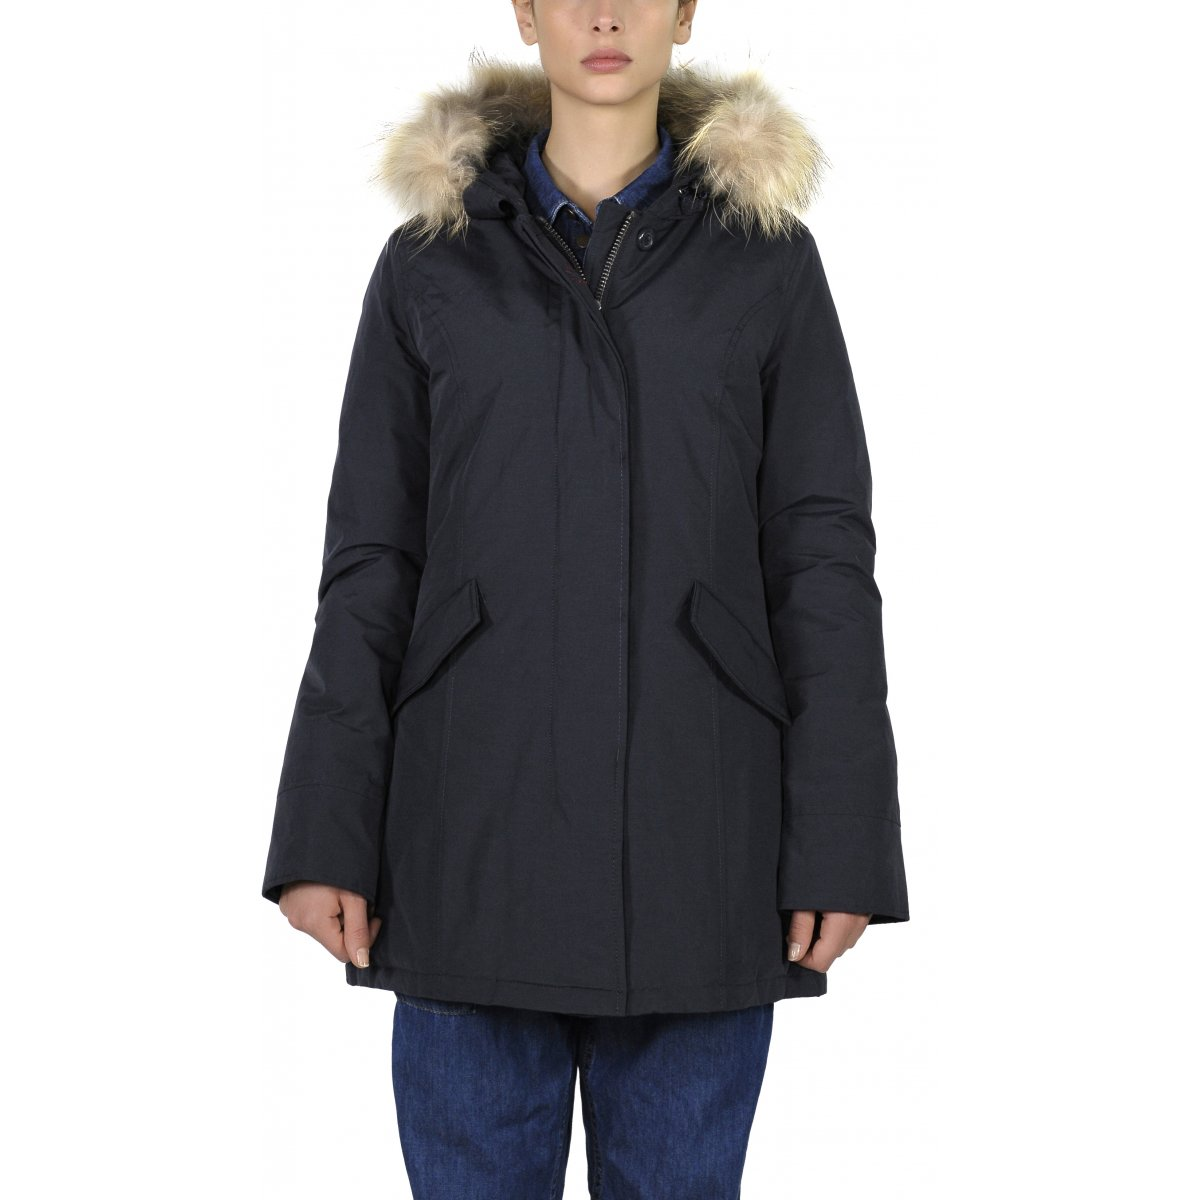 new photos 99b85 51db1 Giacca Donna Fundy Bay - Classic Parkas Canadian Women